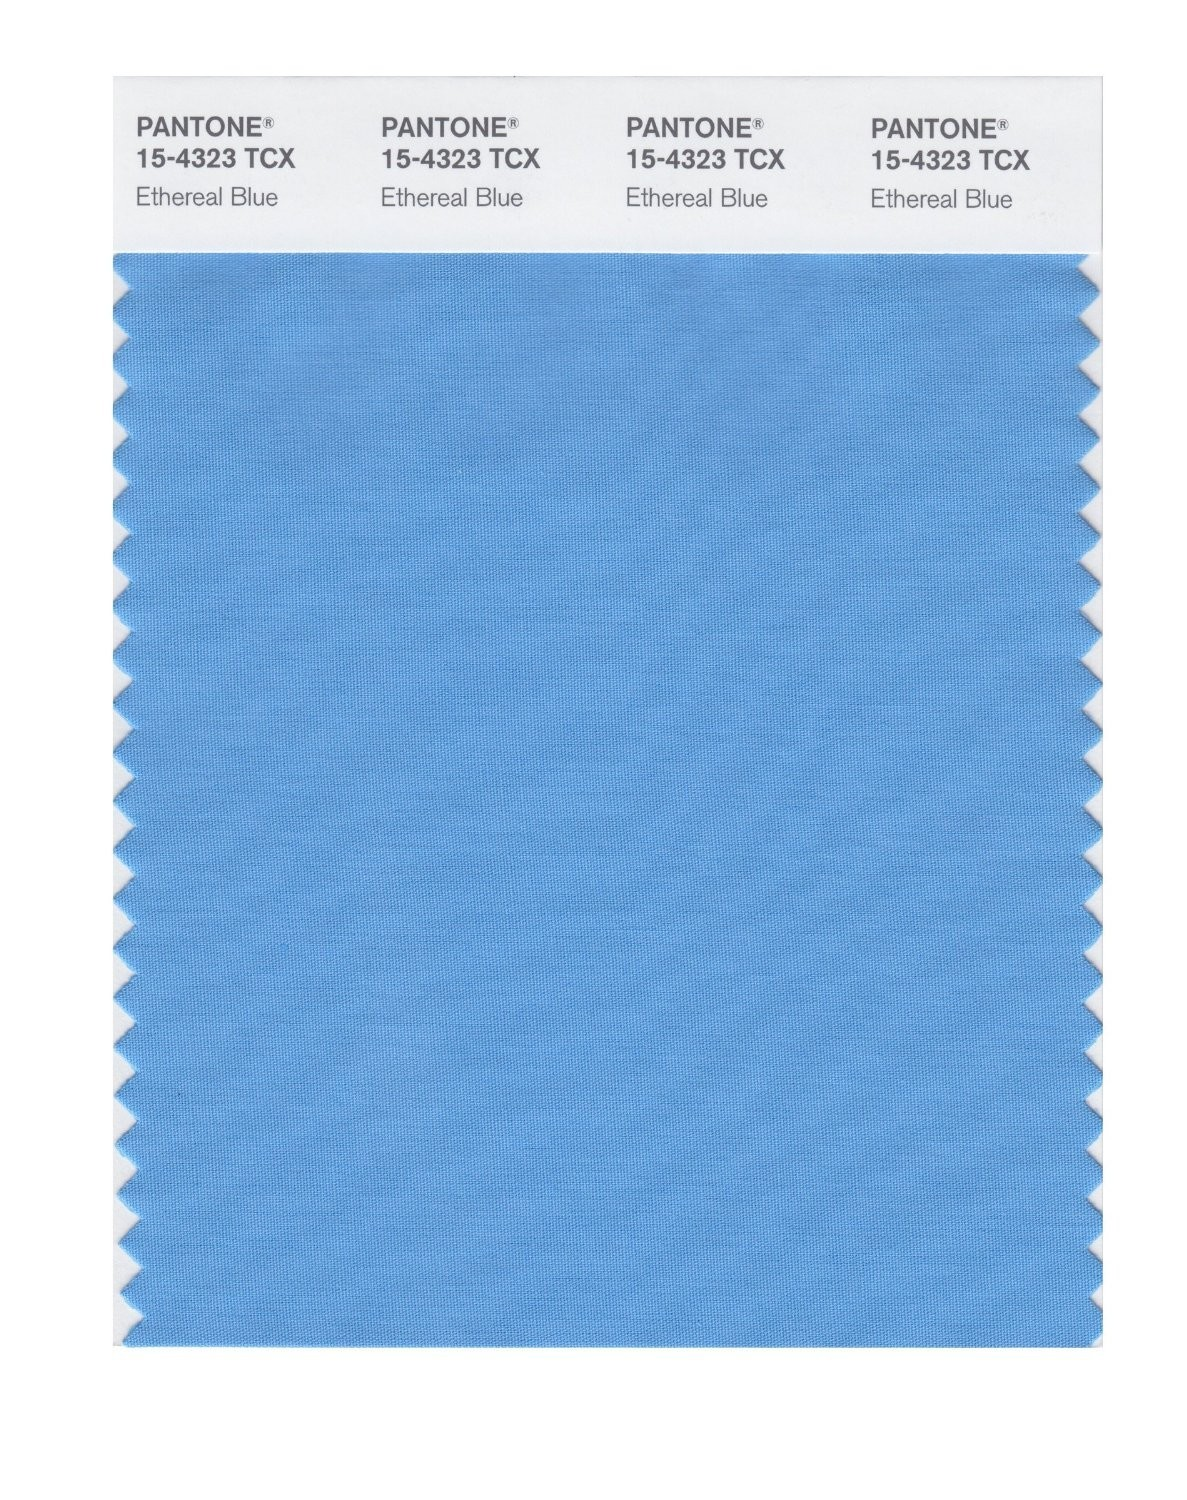 Pantone 15-4323 TCX Swatch Card Ethereal Blue